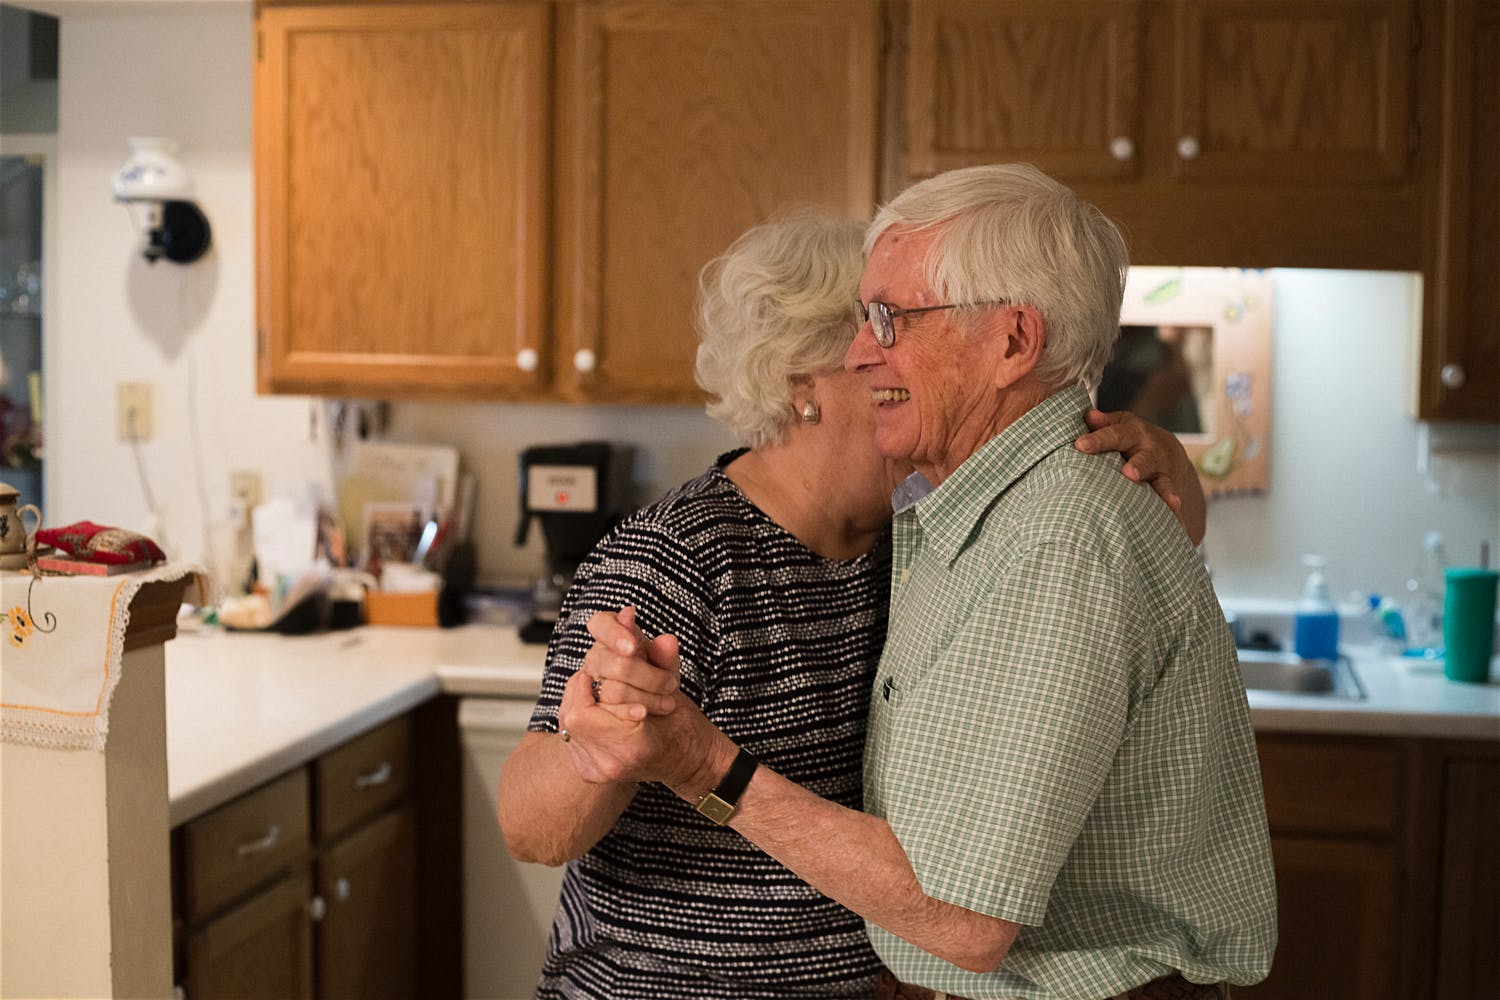 simple moments natural light photographer grandparents nyc